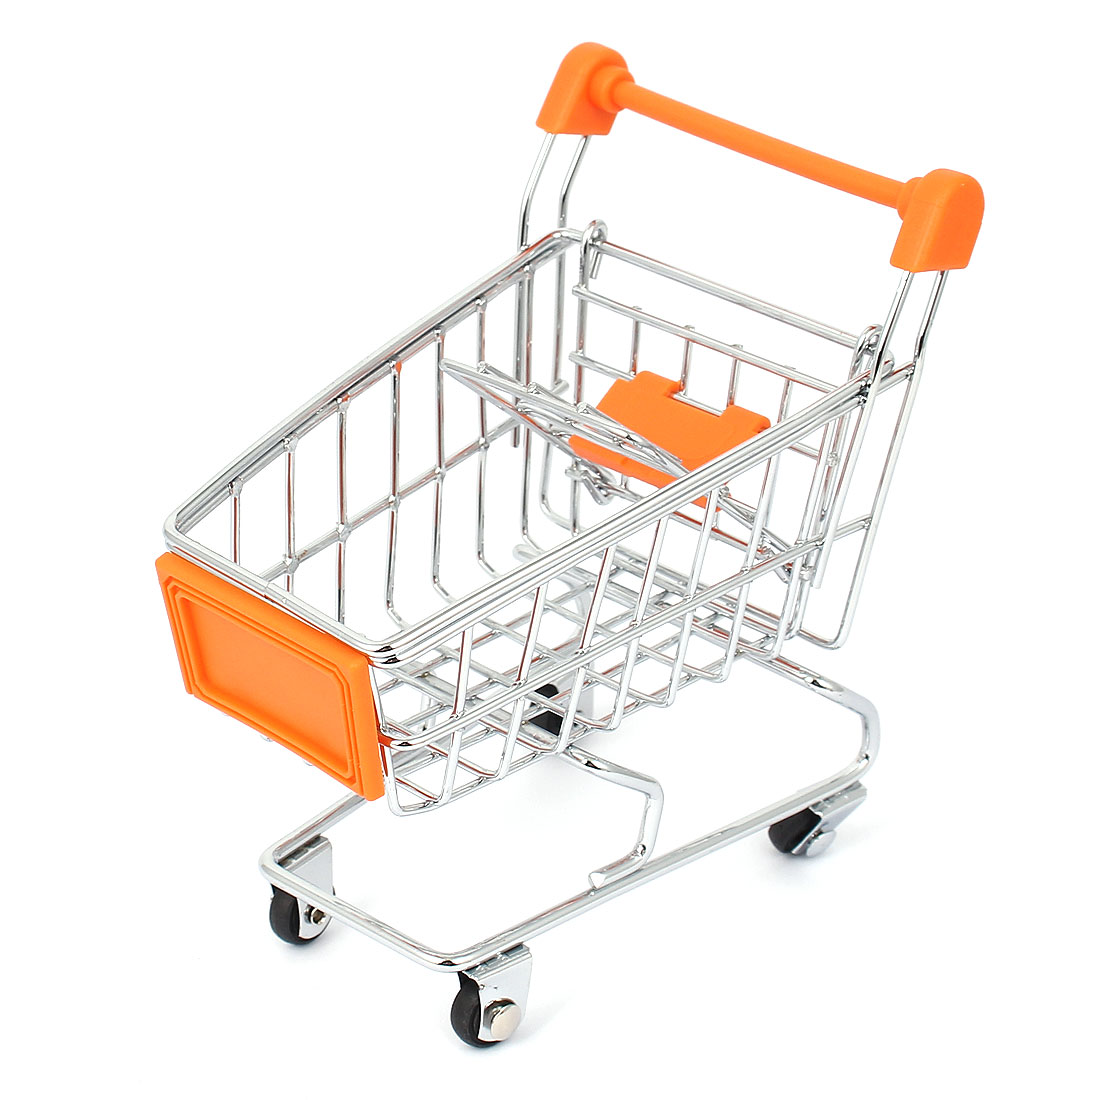 Mini Supermarket Shopping Hand Trolly Cart Model Toy Storage Container Orange